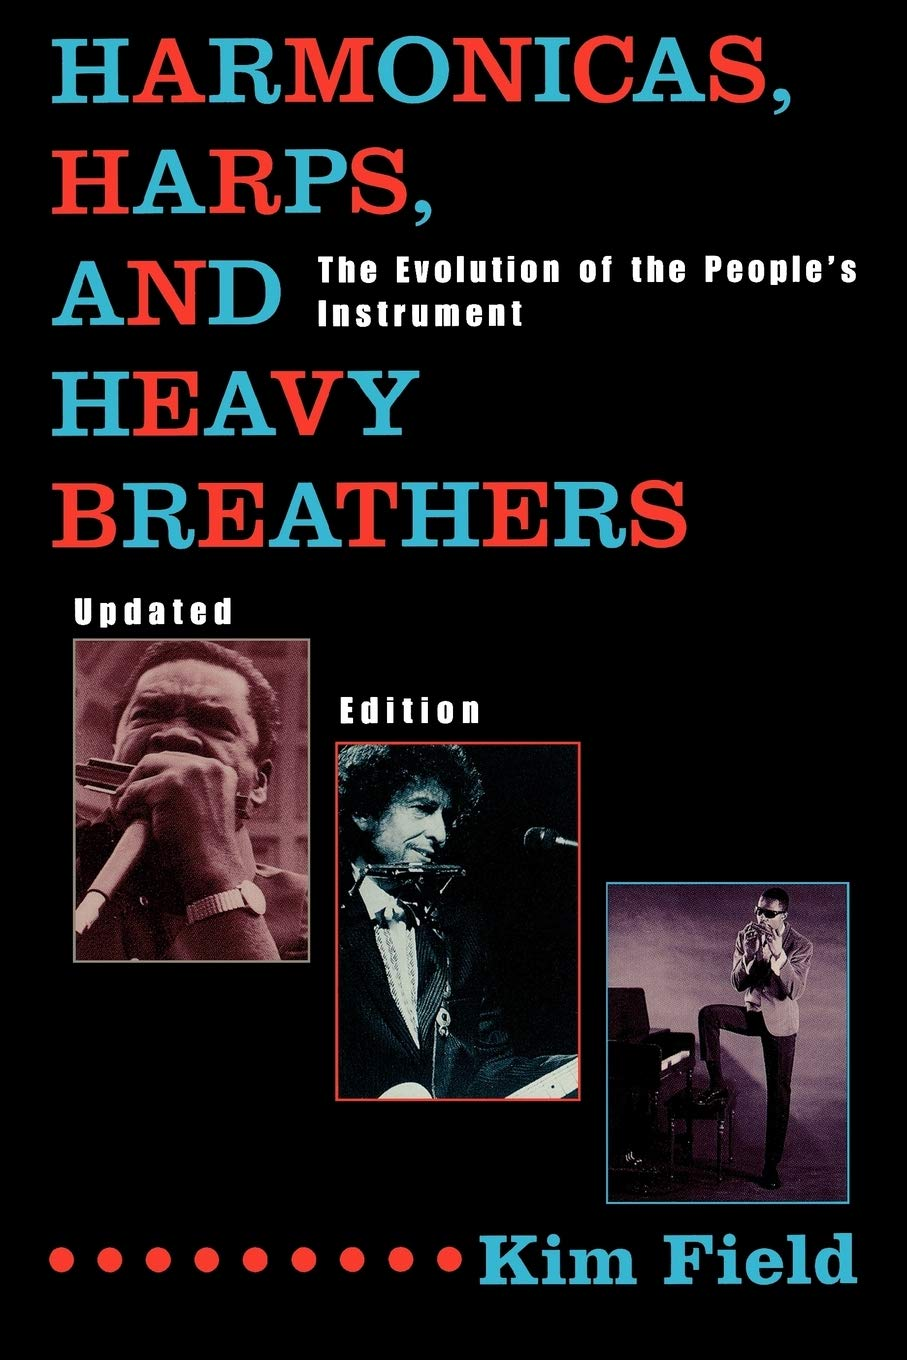 Harmonicas Harps And Heavy Breathers  The Evolution Of The People's Instrument Updated Edition